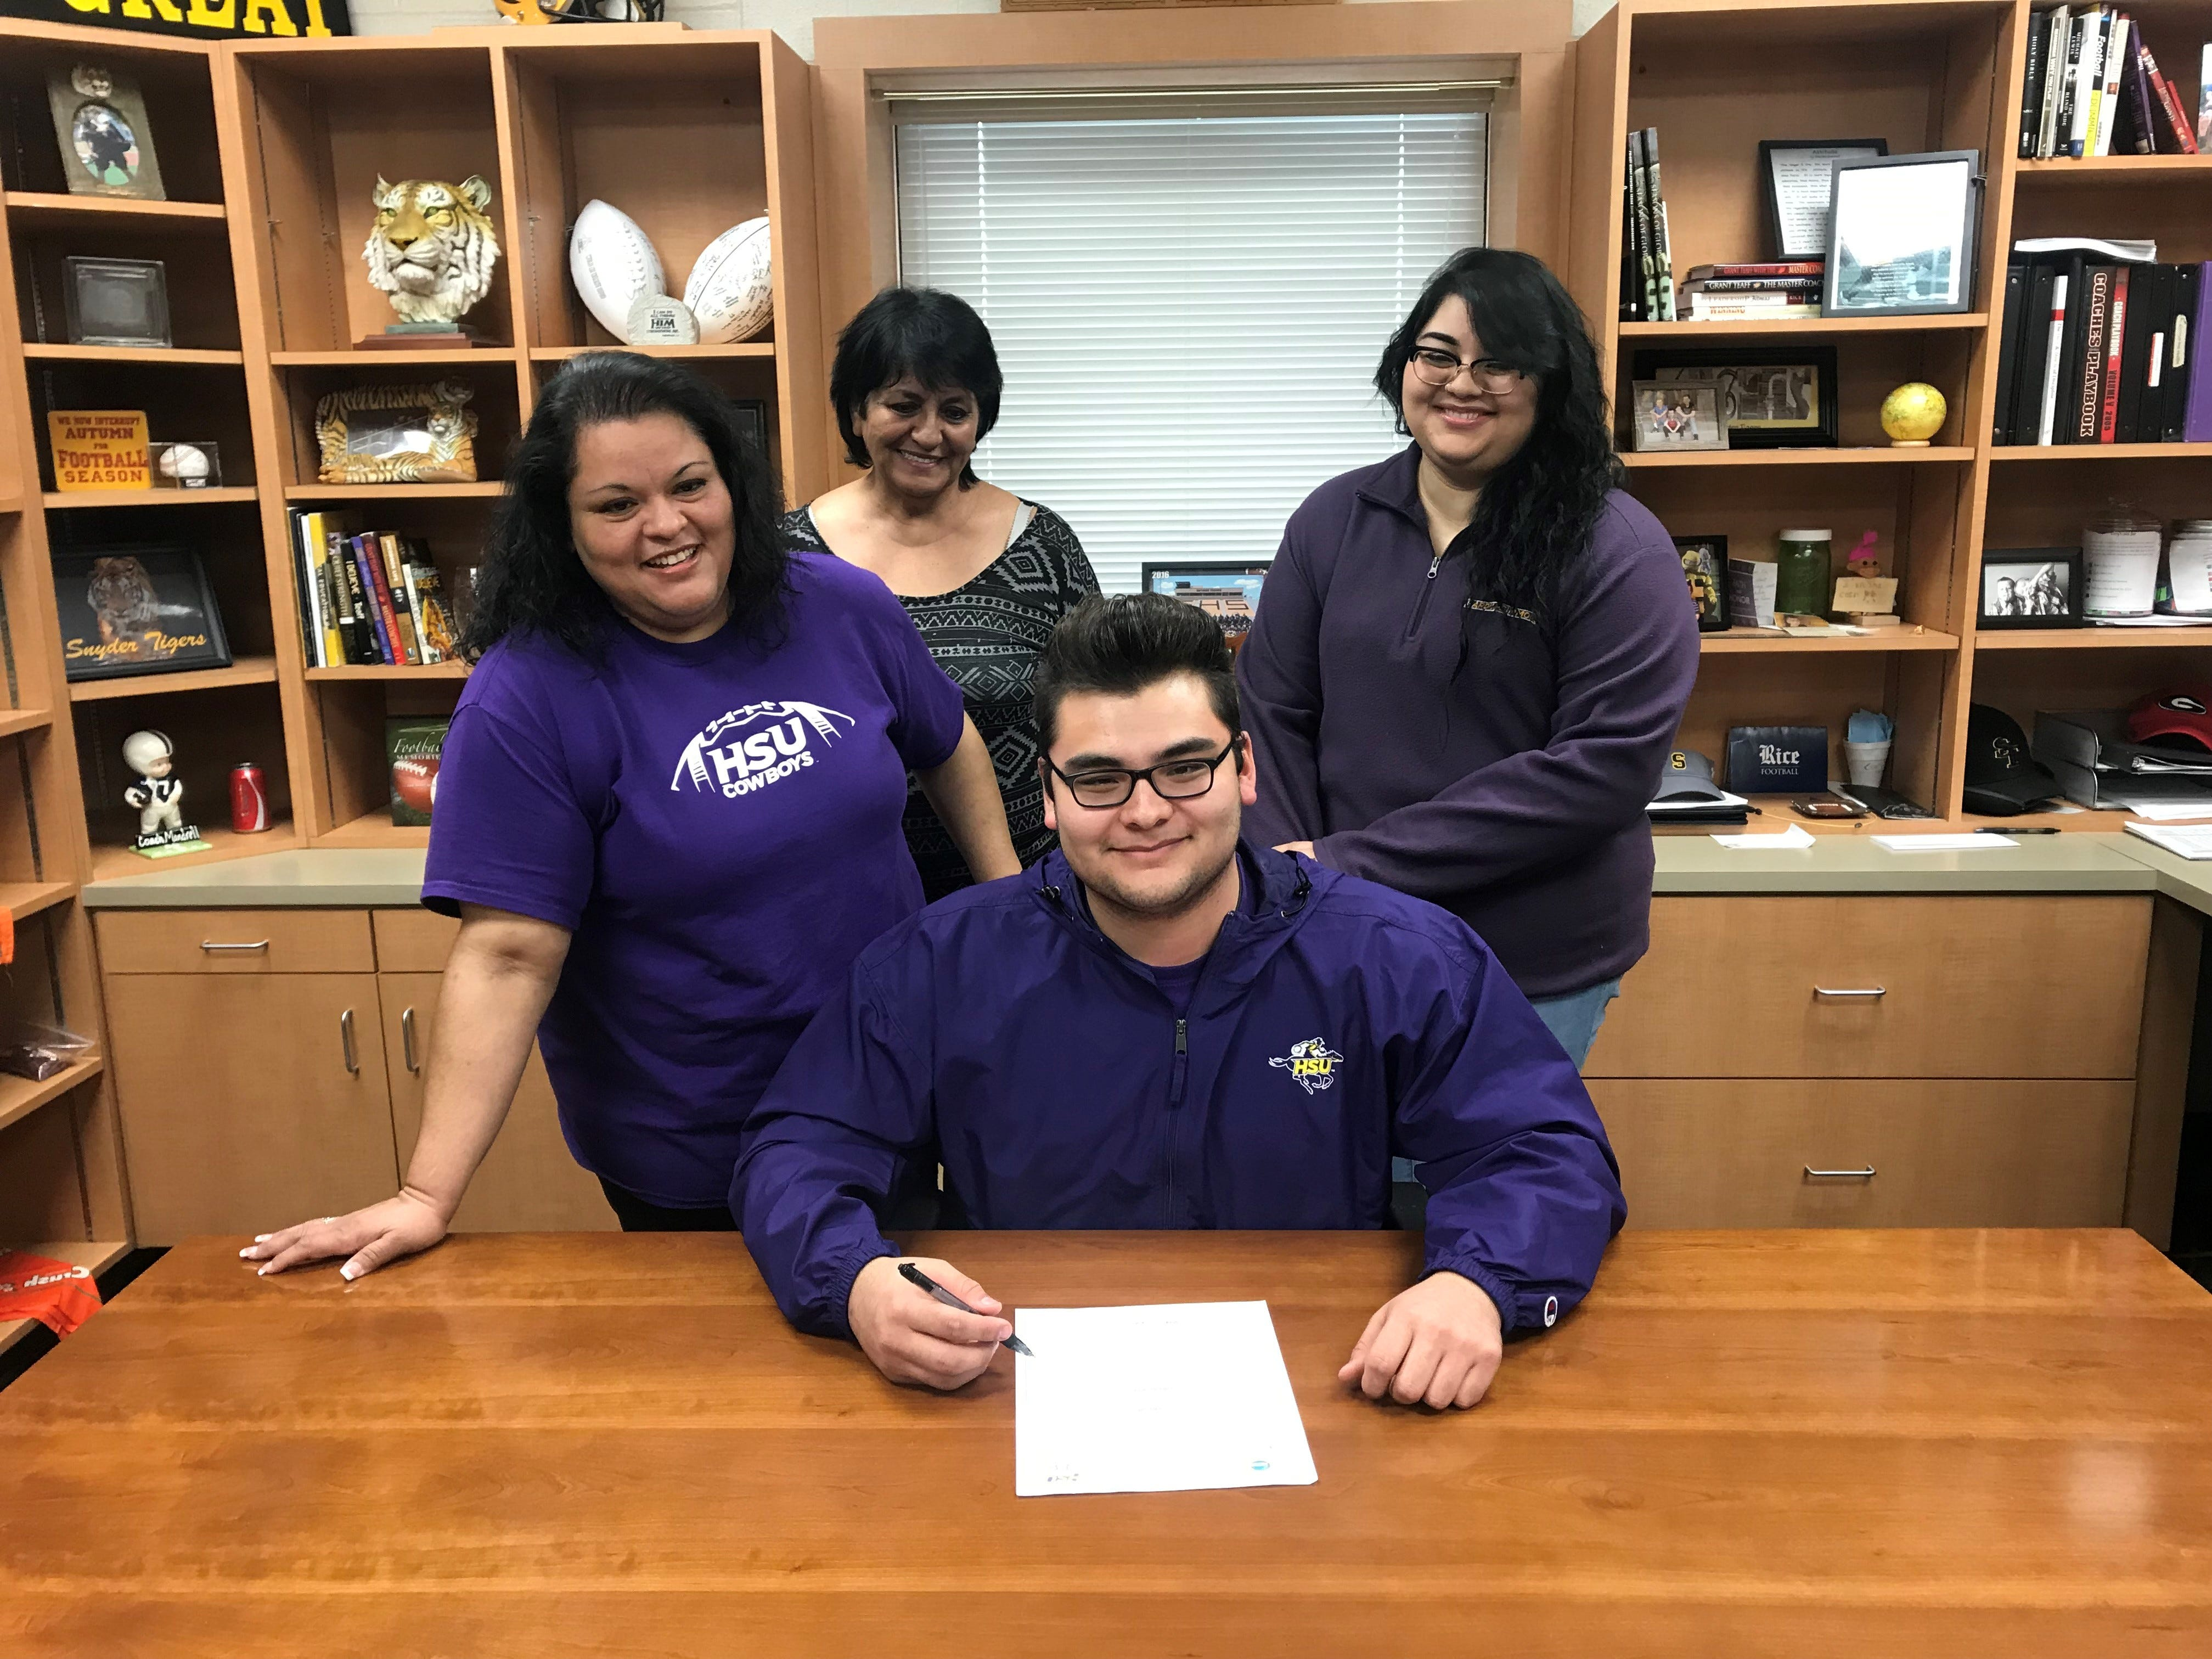 Snyder's Alex Jaimes signed with Hardin-Simmons football.